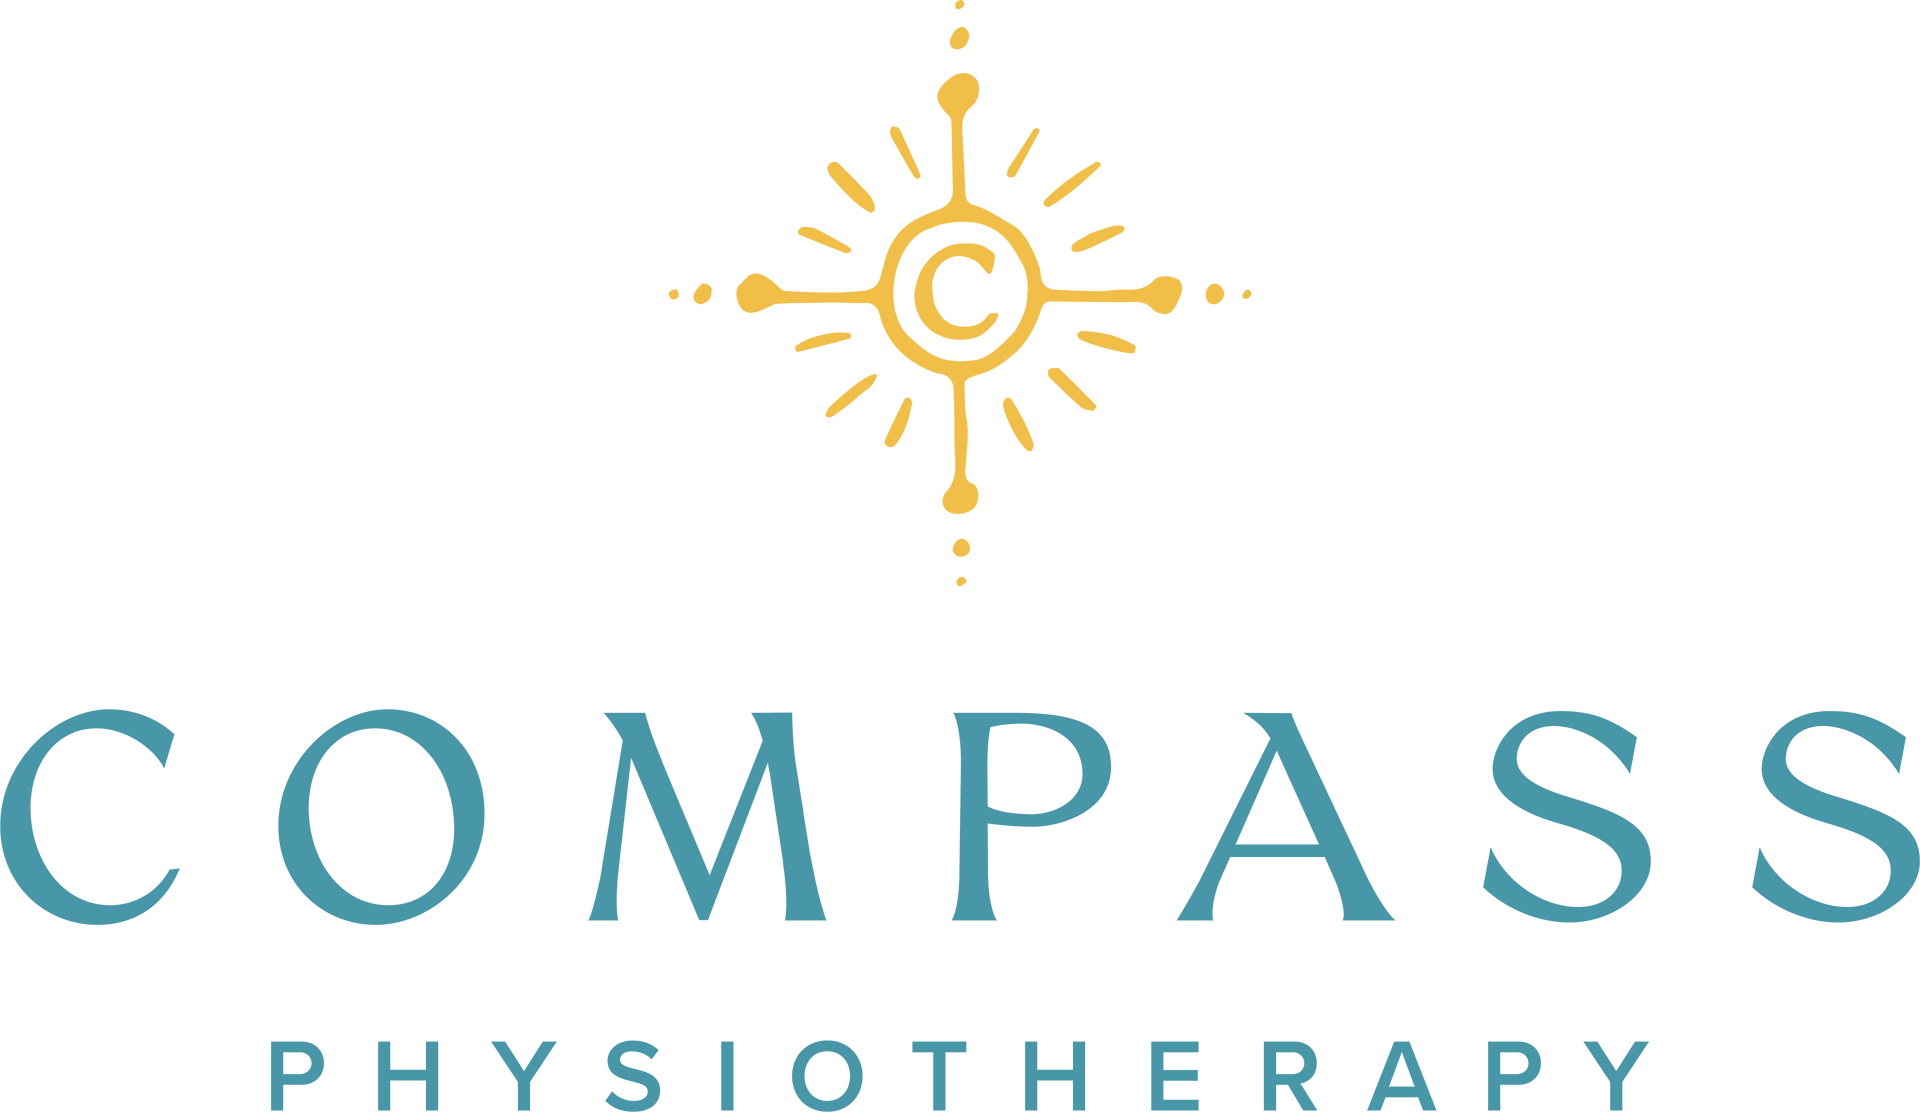 https://waypointcollective.com/wp-content/uploads/2021/01/Compass-Physiotherapy-Logo.png